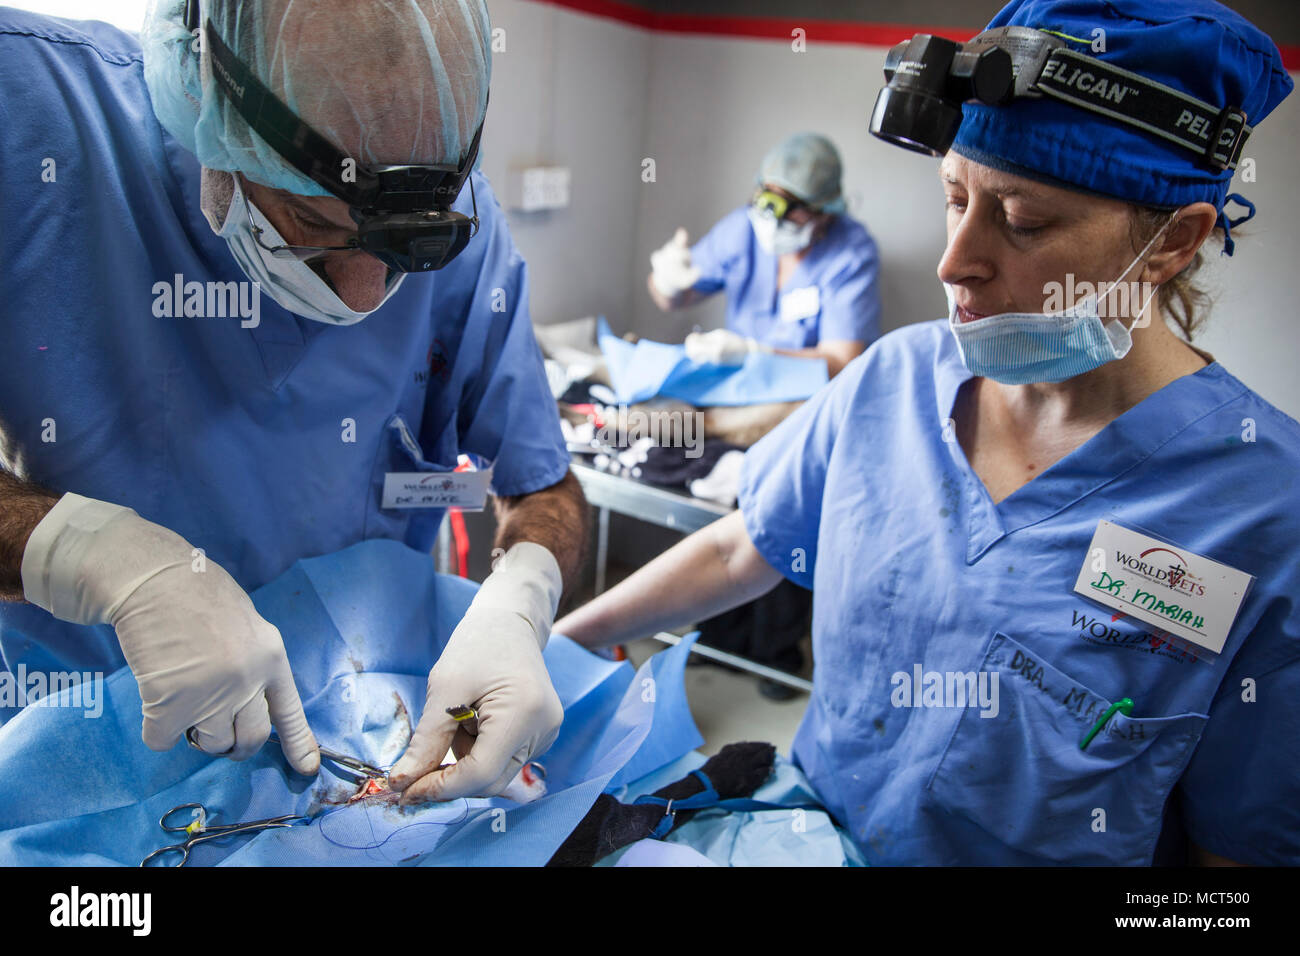 Male and female vet during dog neutering procedure, Patan, Bagmati, Nepal - Stock Image